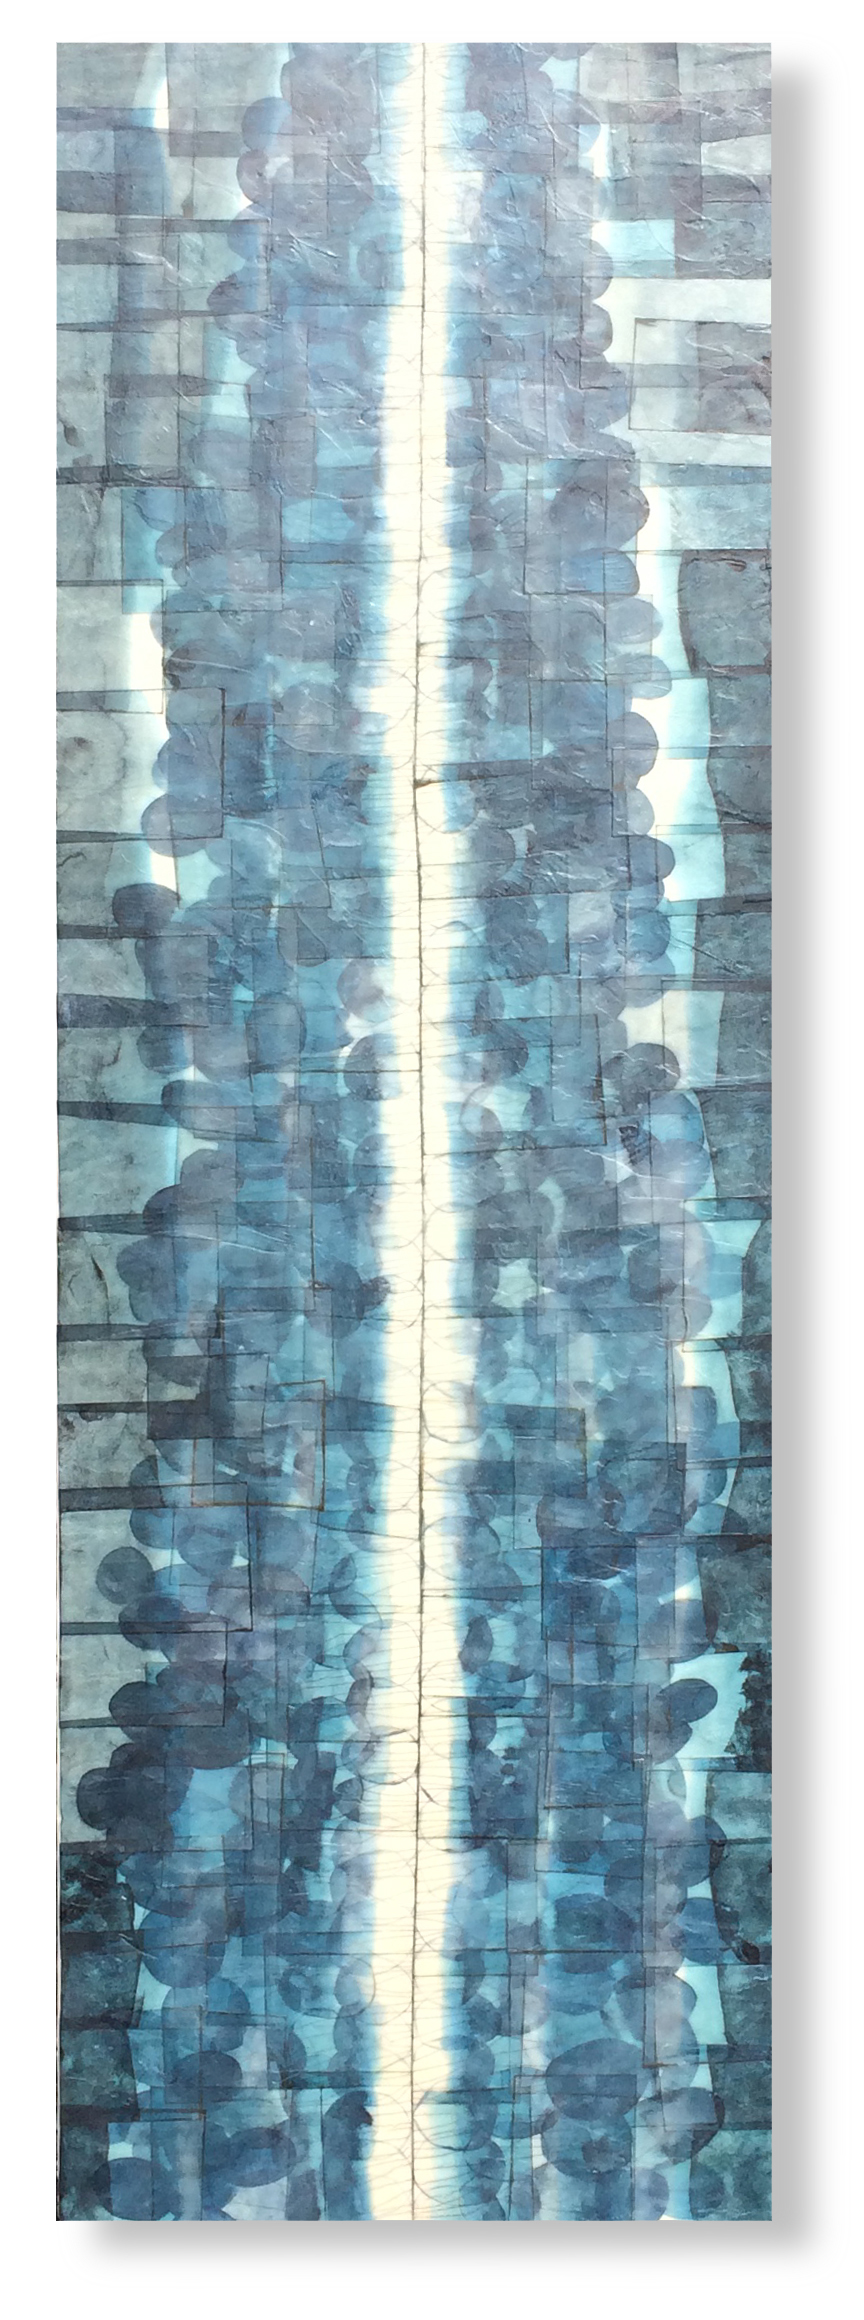 """Coming up for Air, 2015 Encaustic, Mulberry Paper, Watercolor 12"""" x 36""""x 2"""""""